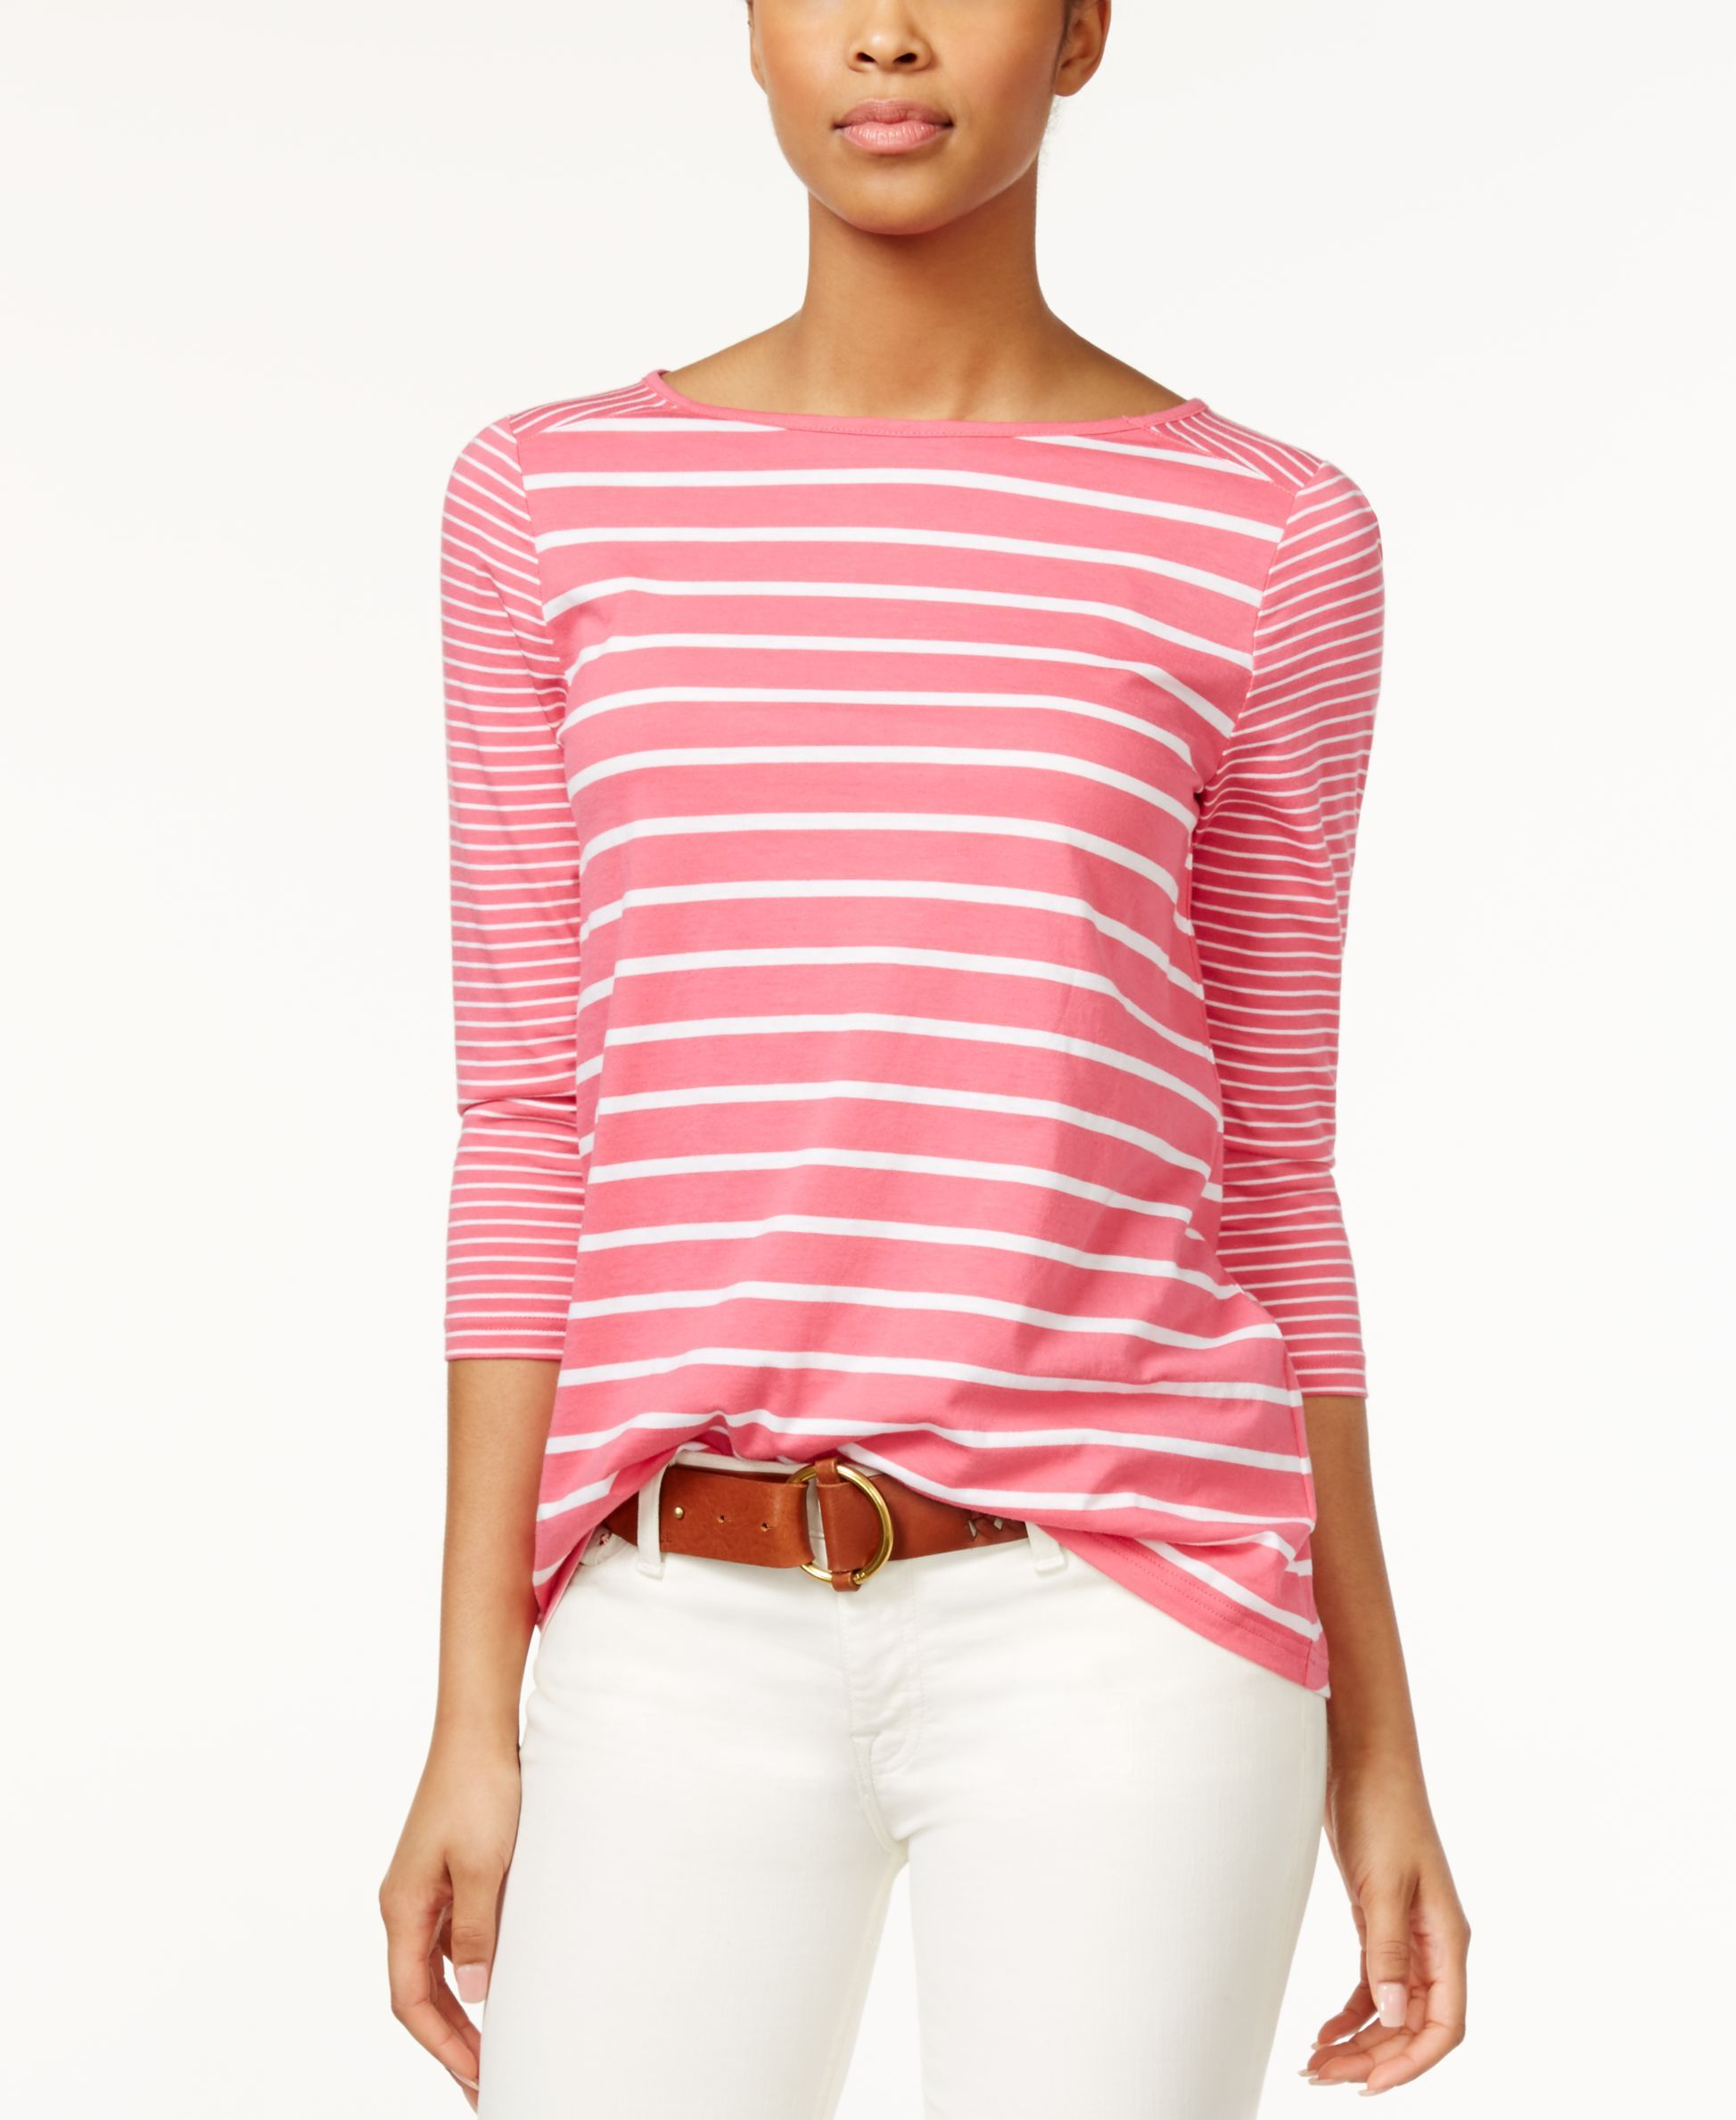 1de07e74a2 Black Ribbed Cocoon Cardigan. Striped Top. Distressed Jeans #denim #stripes  #style